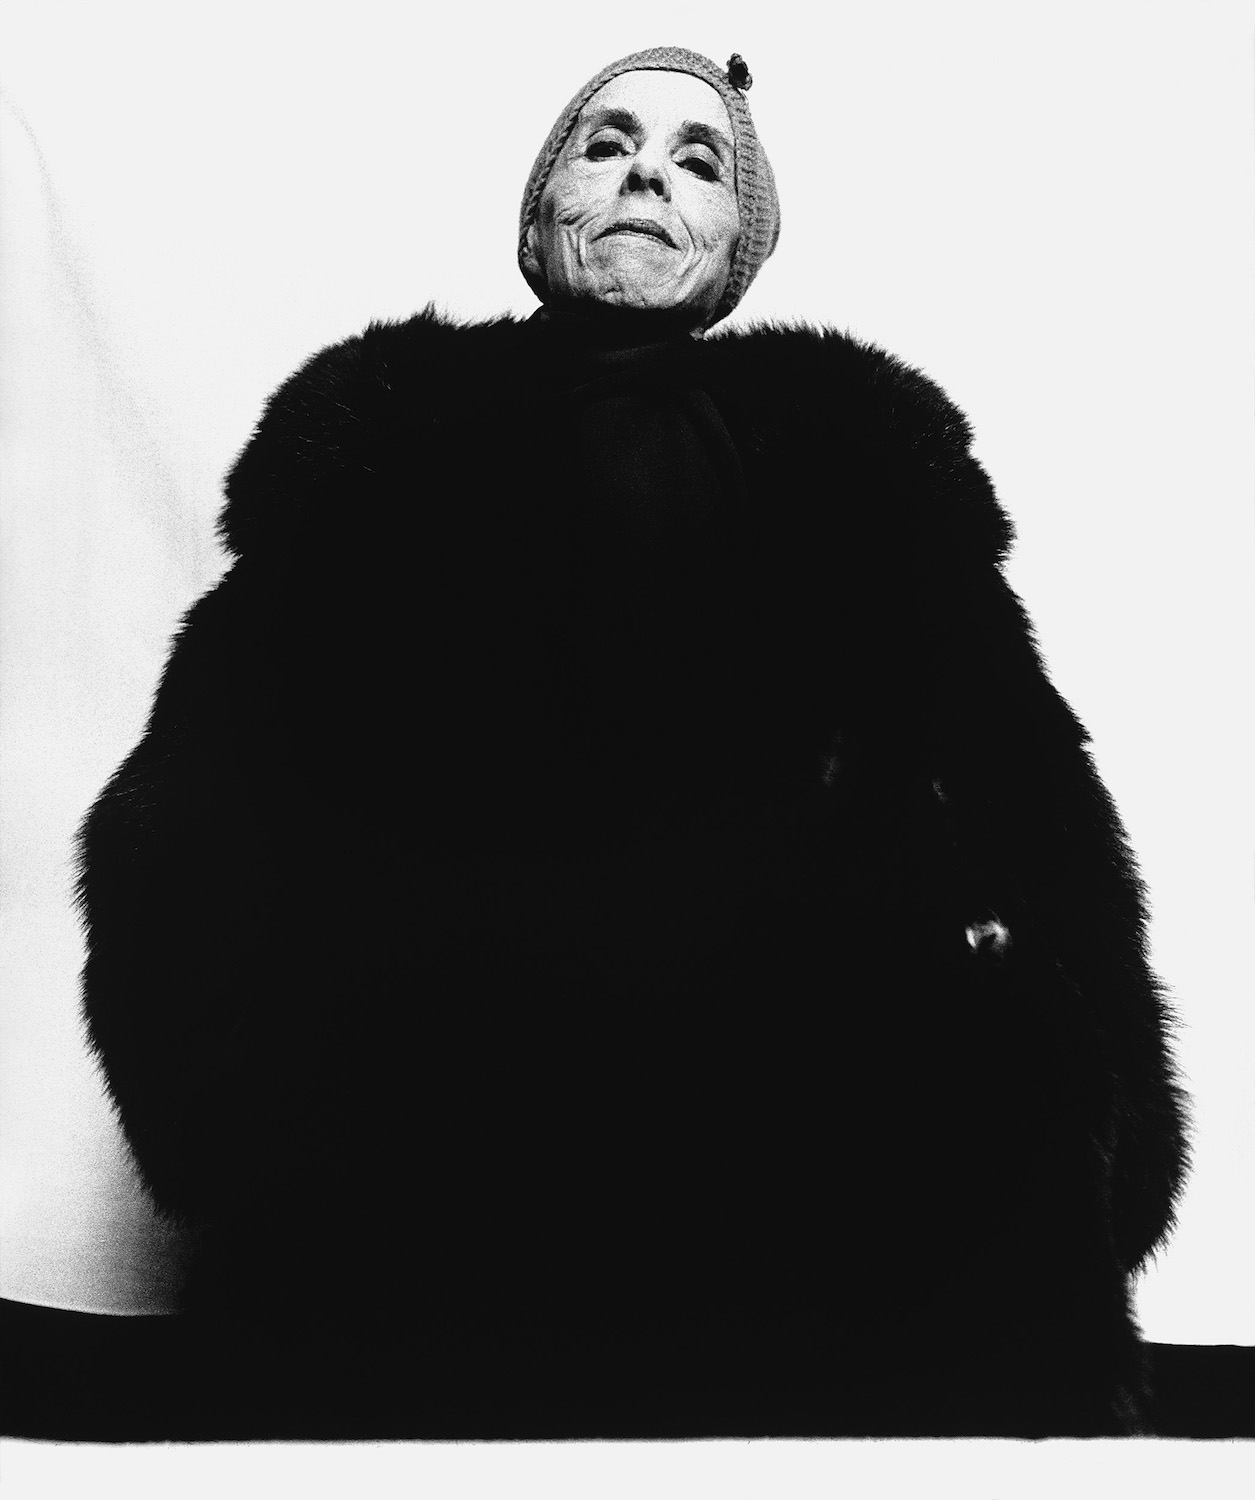 Isak Dinesen, writer, Copenhagen, Denmark, April 9, 1958